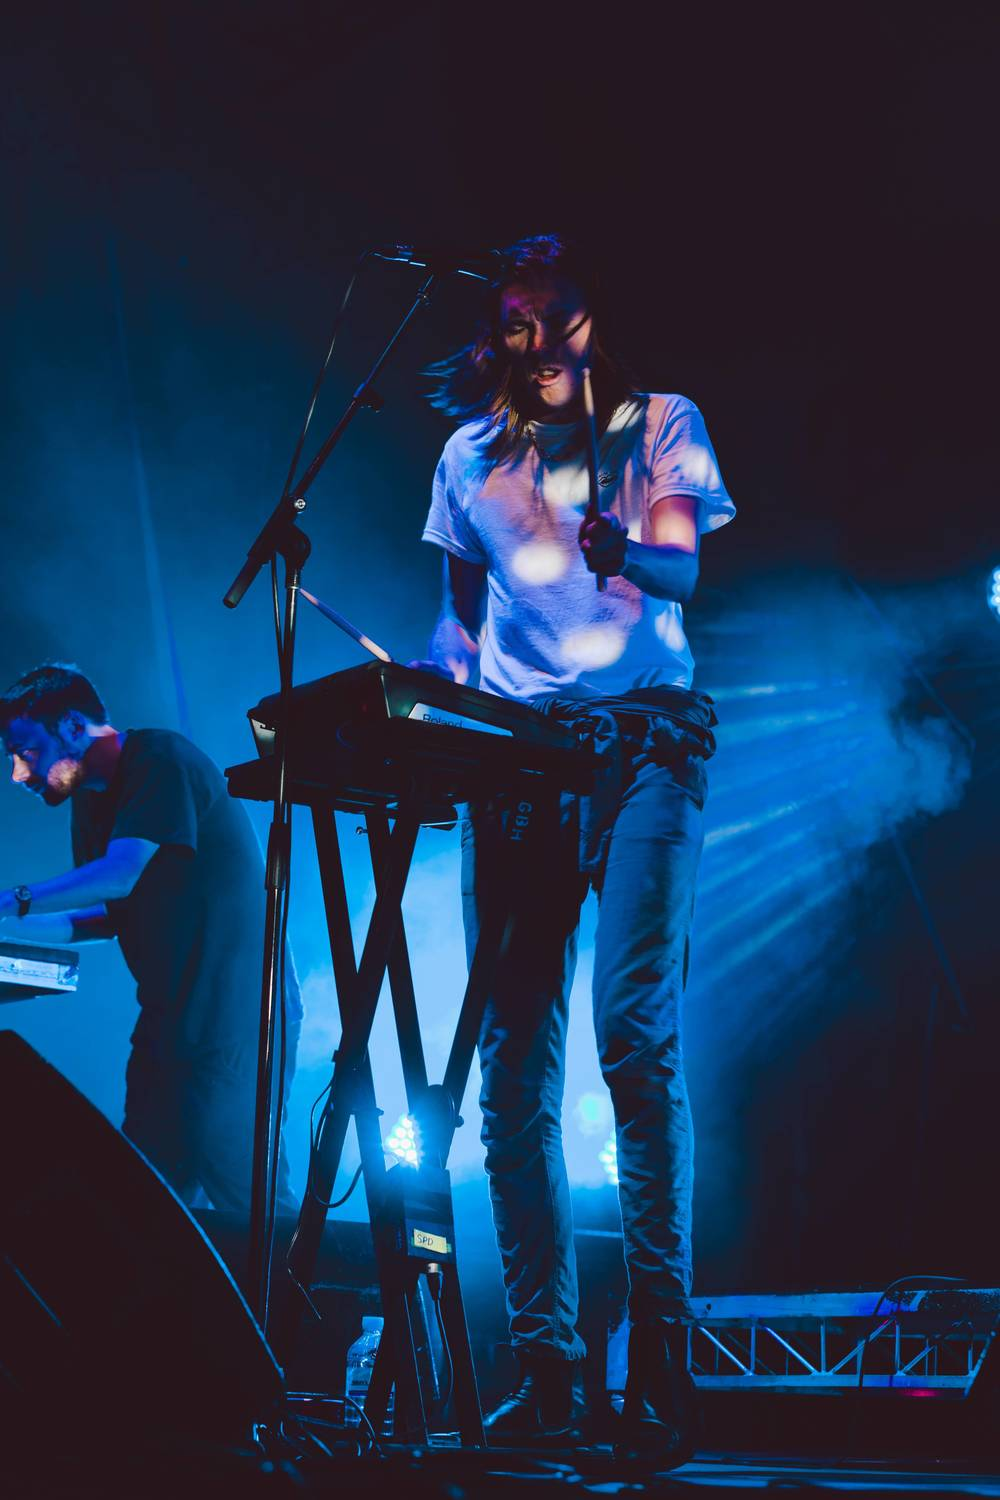 Seekae_LanewayBrisbane_31January2015_MiaForrest_104A3550.jpg